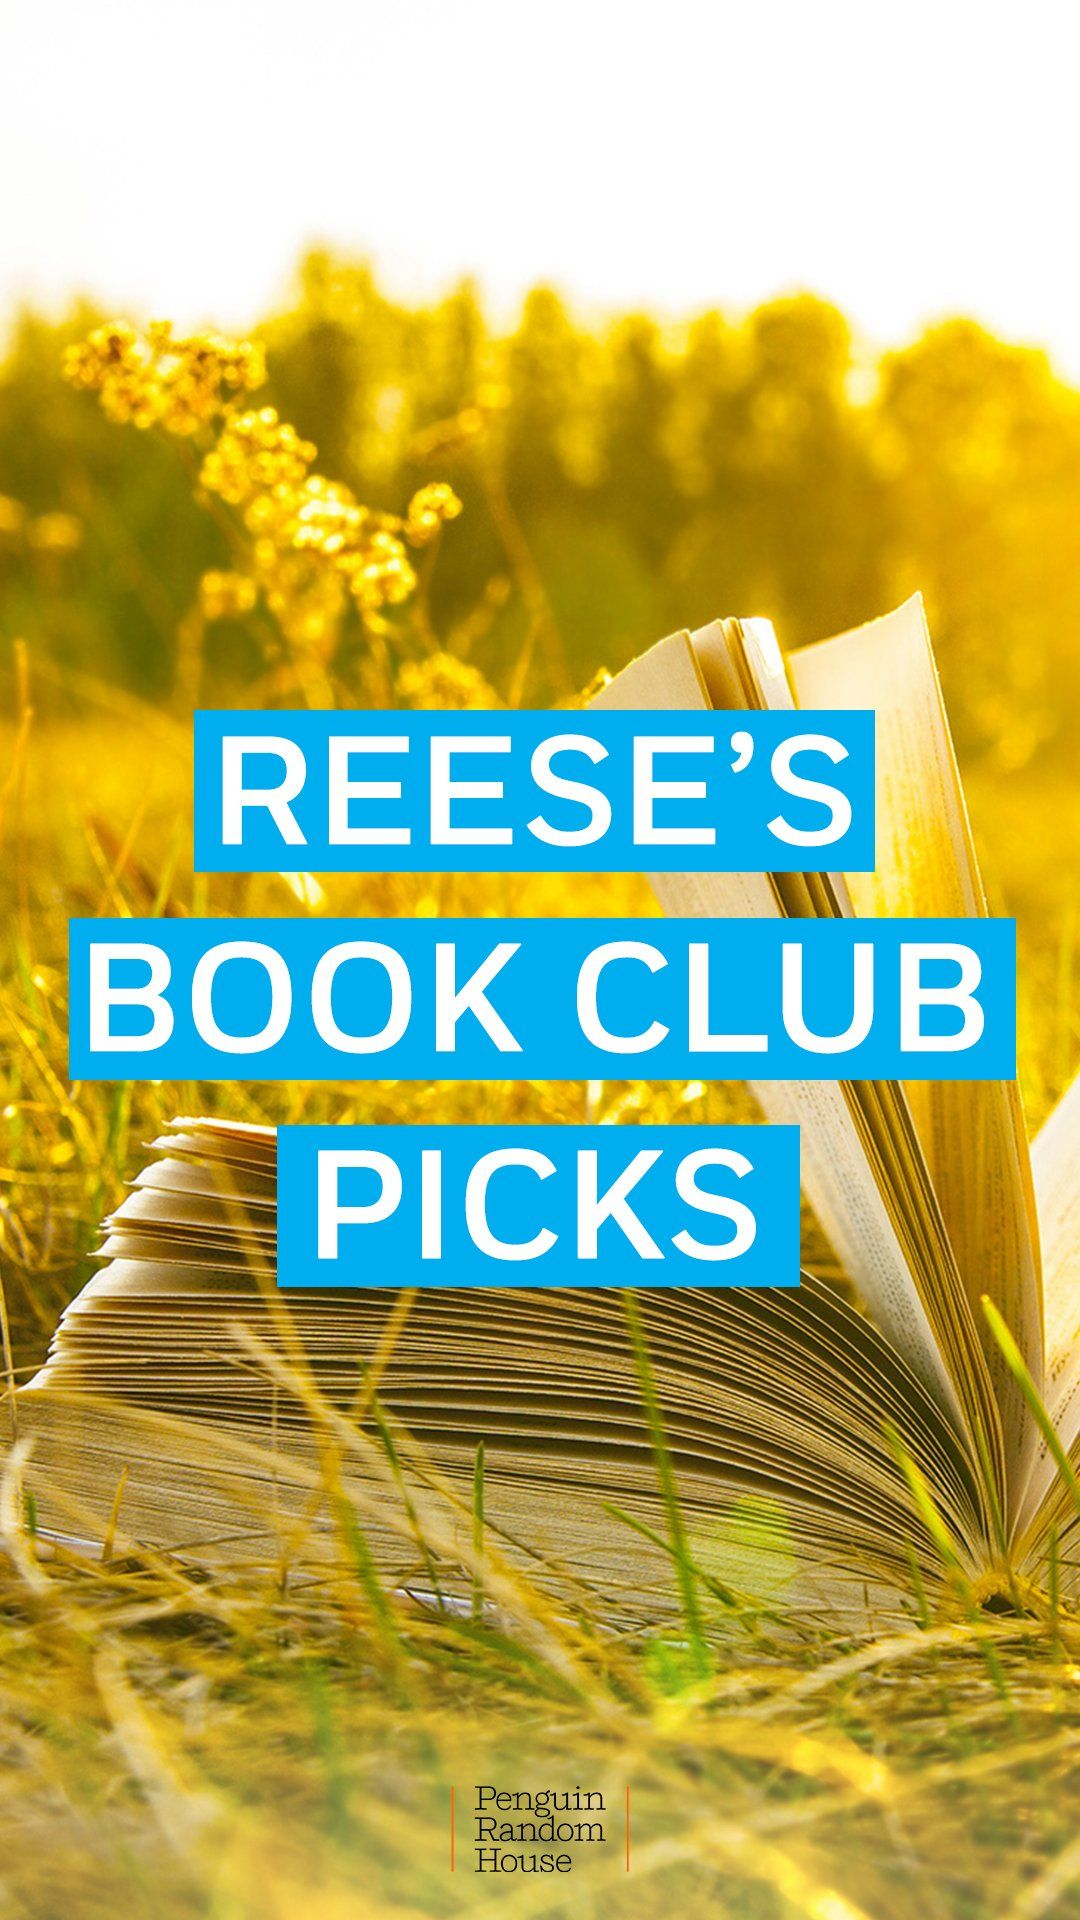 Must read books from Reese Witherspoon's book club! Add these picks from Hello Sunshine to your reading list. #books #bookclub